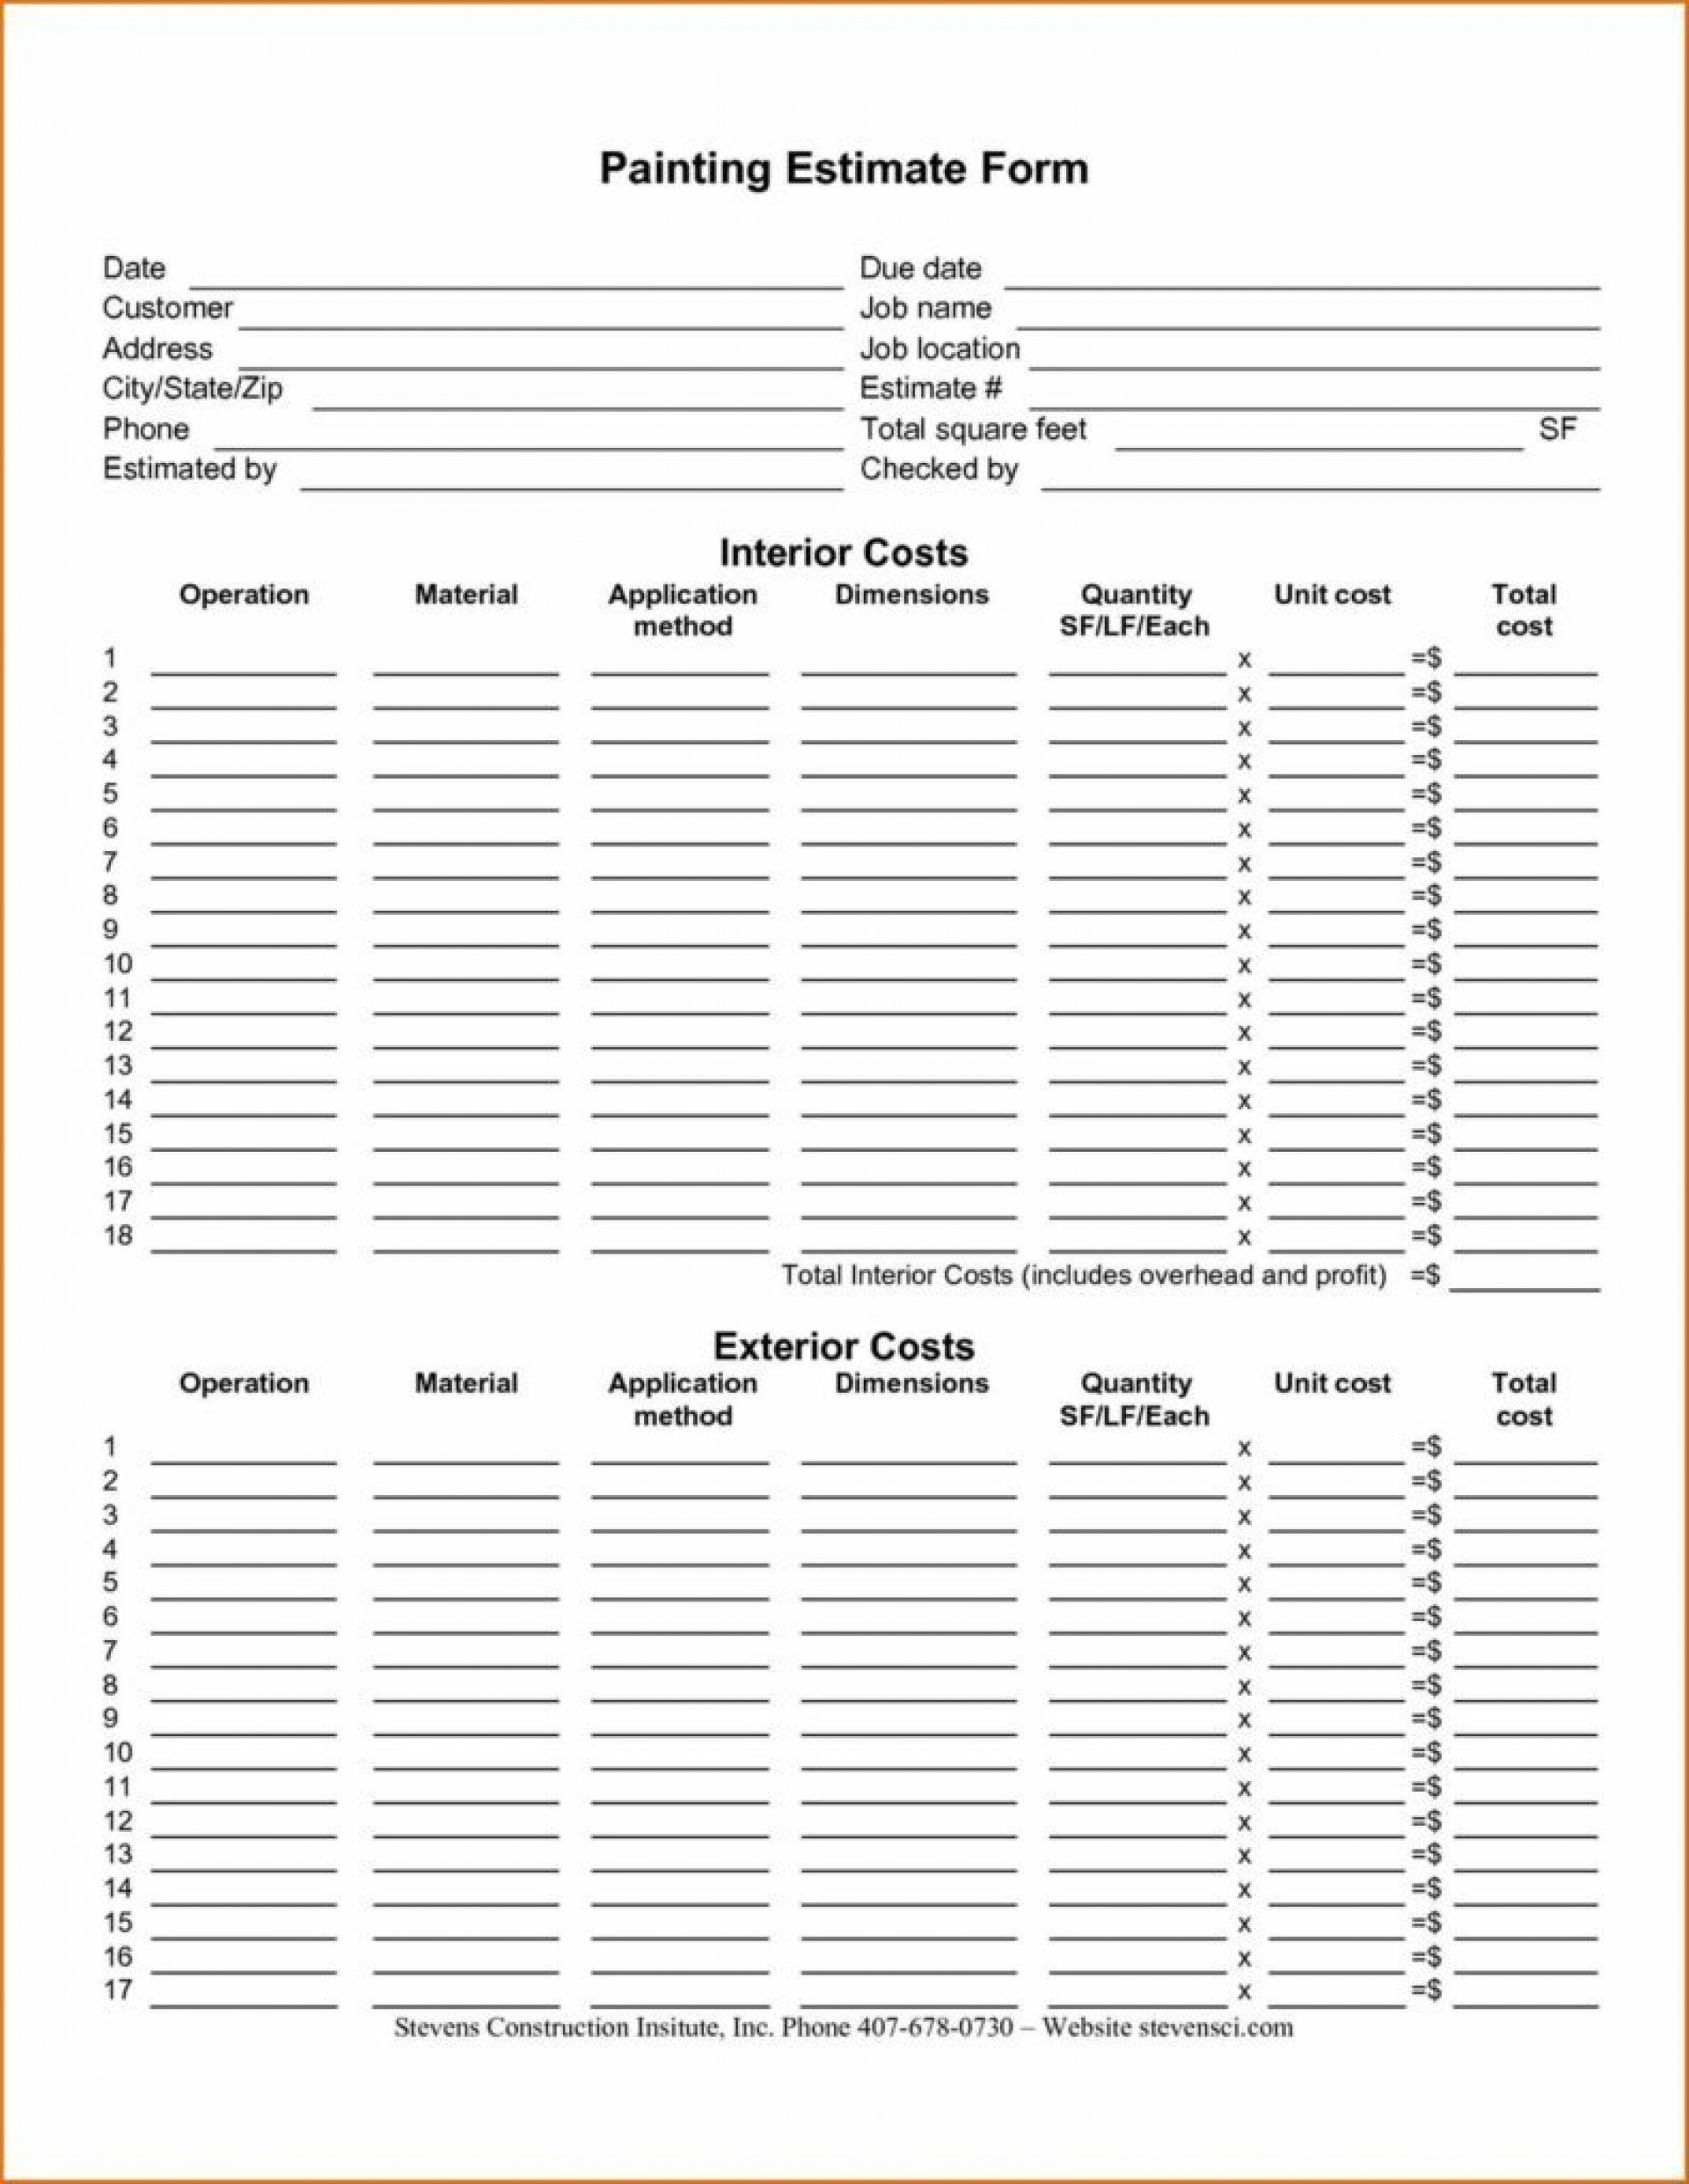 Hr Spreadsheet Templates Throughout 008 Body Shop Estimate Template Free And Hr Cover Letter Collision